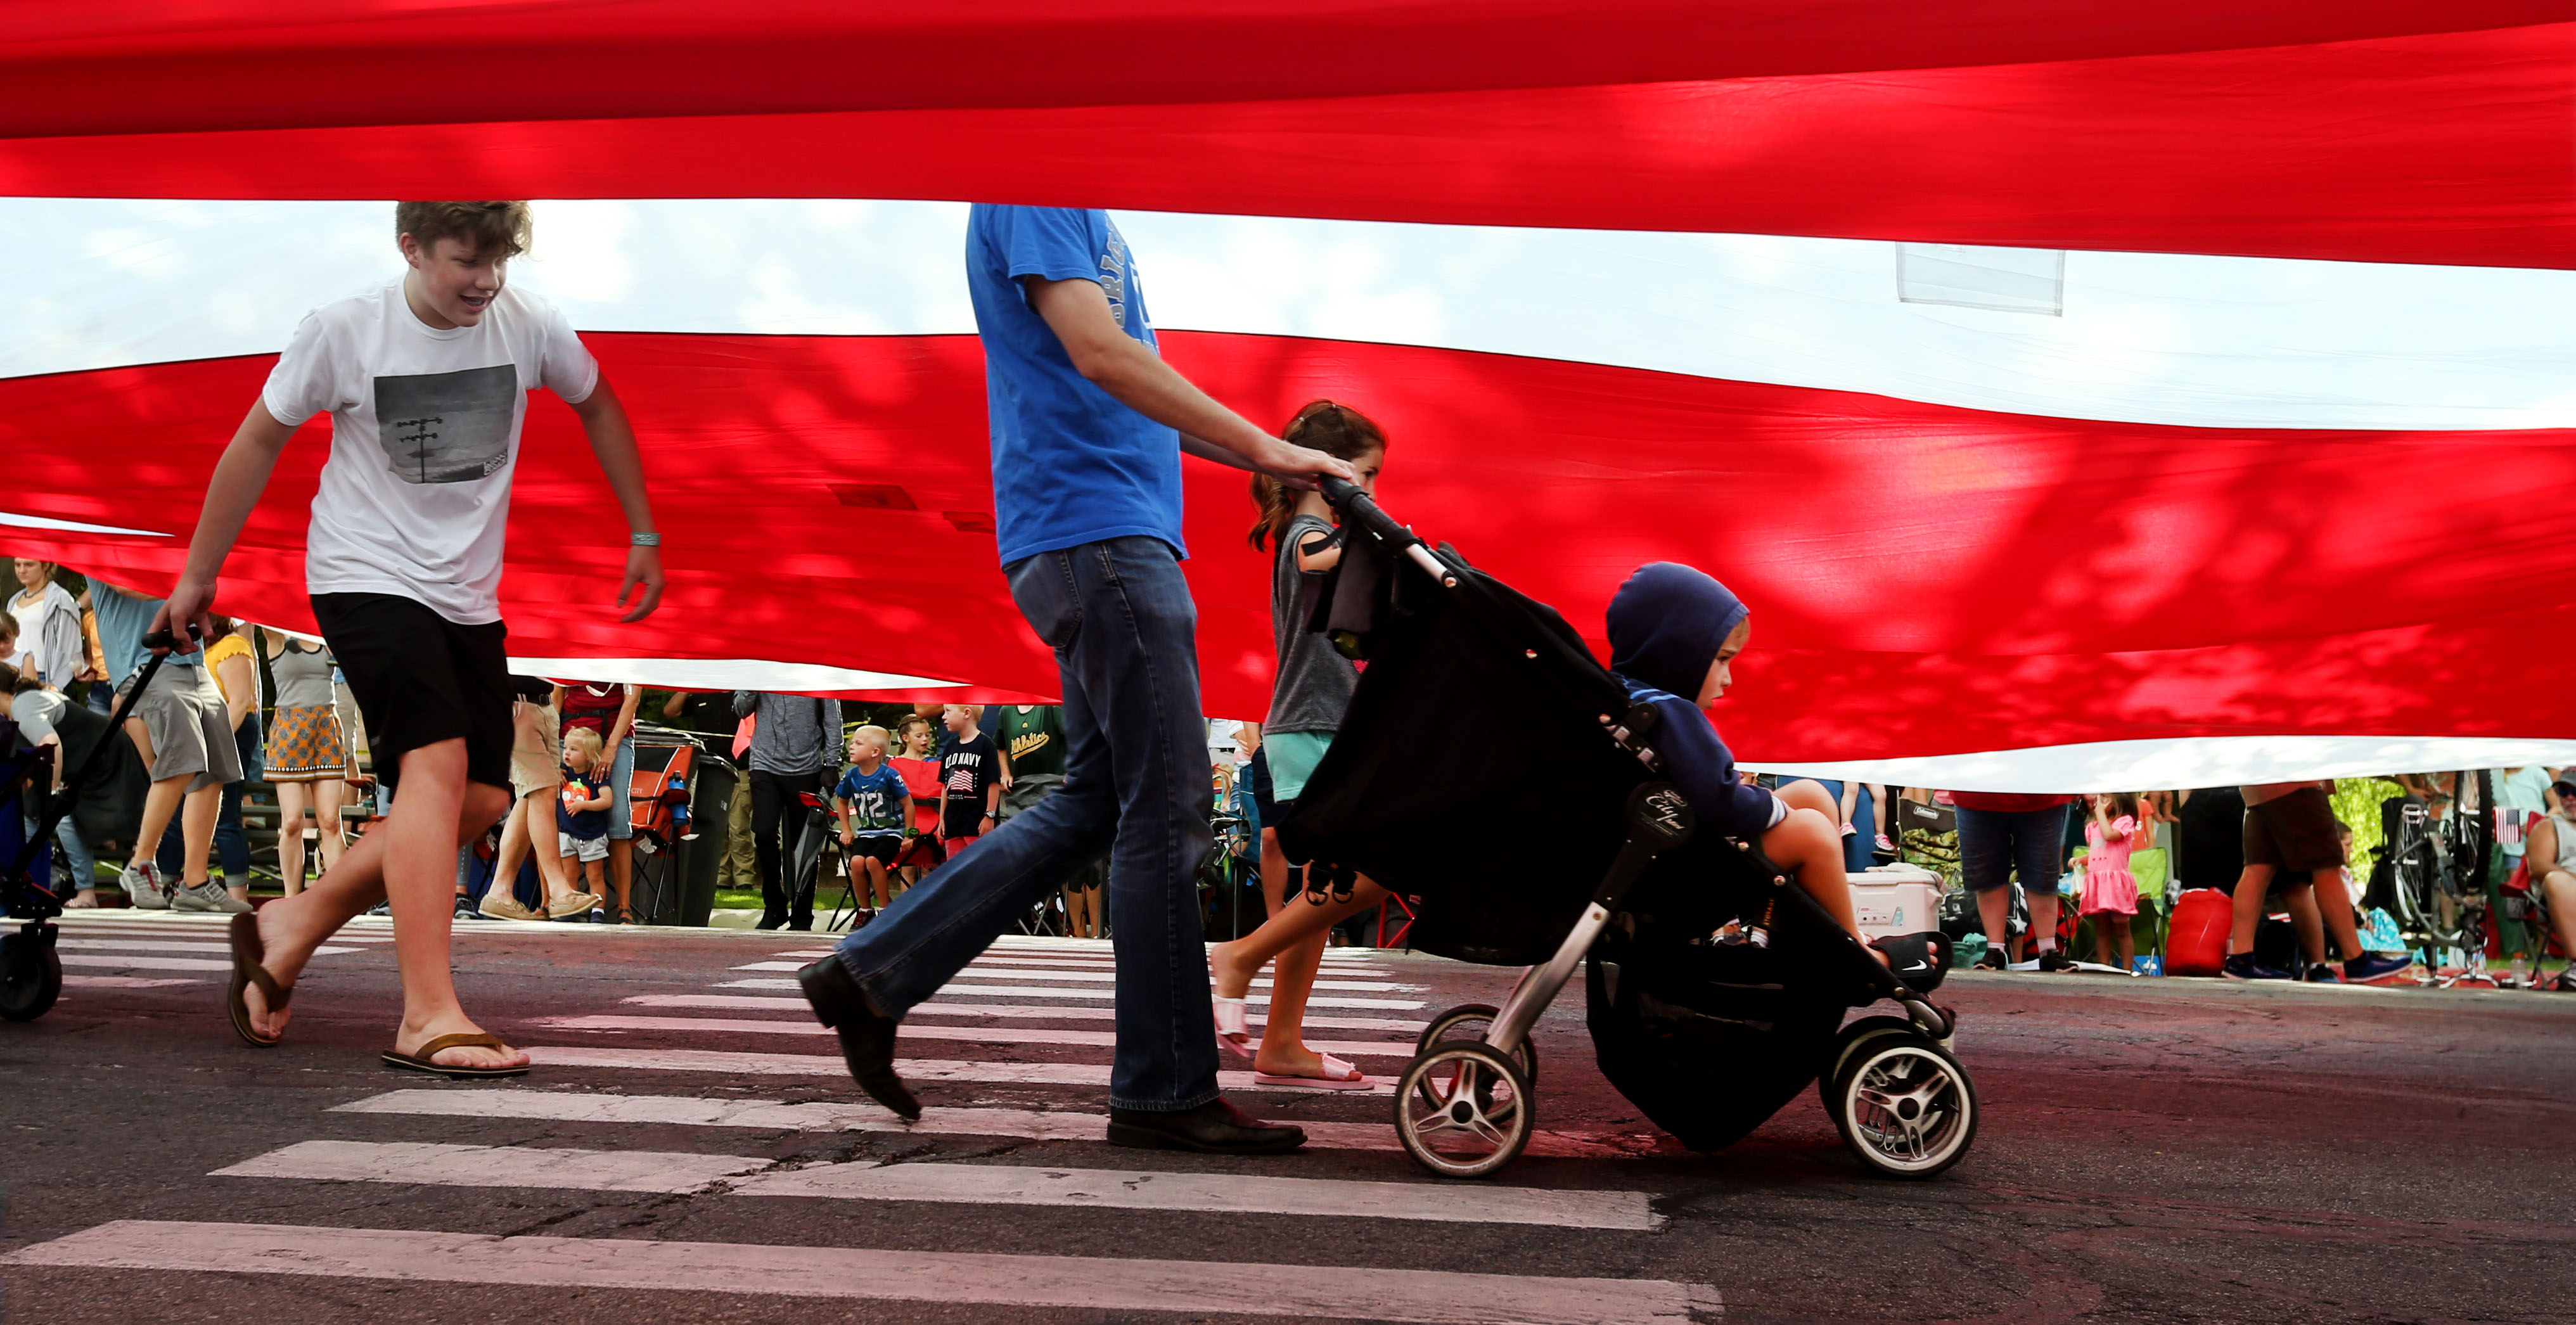 People walk underneath the American flag during the Days of '47 Parade in Salt Lake City on Wednesday, July 24, 2019.